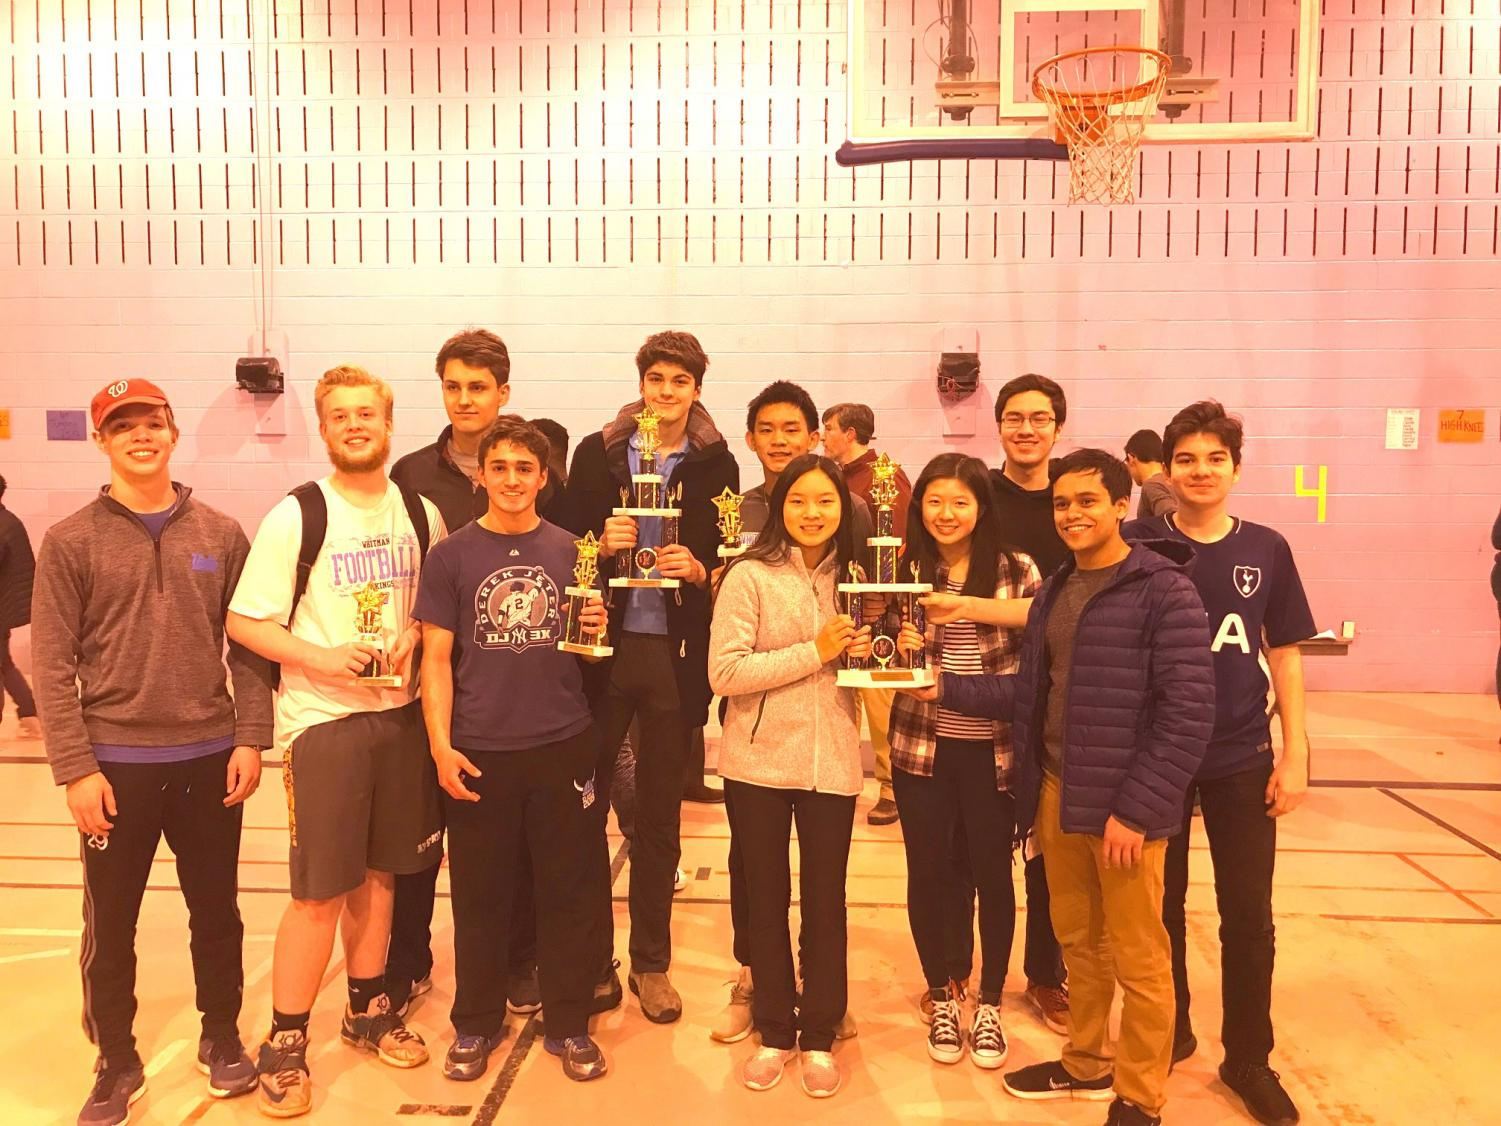 Whitman chess team members hold up group and individual trophies after winning the state championship March 17.  The victory marked the Vikings' second consecutive state championship. Photo courtesy Alex Chen.